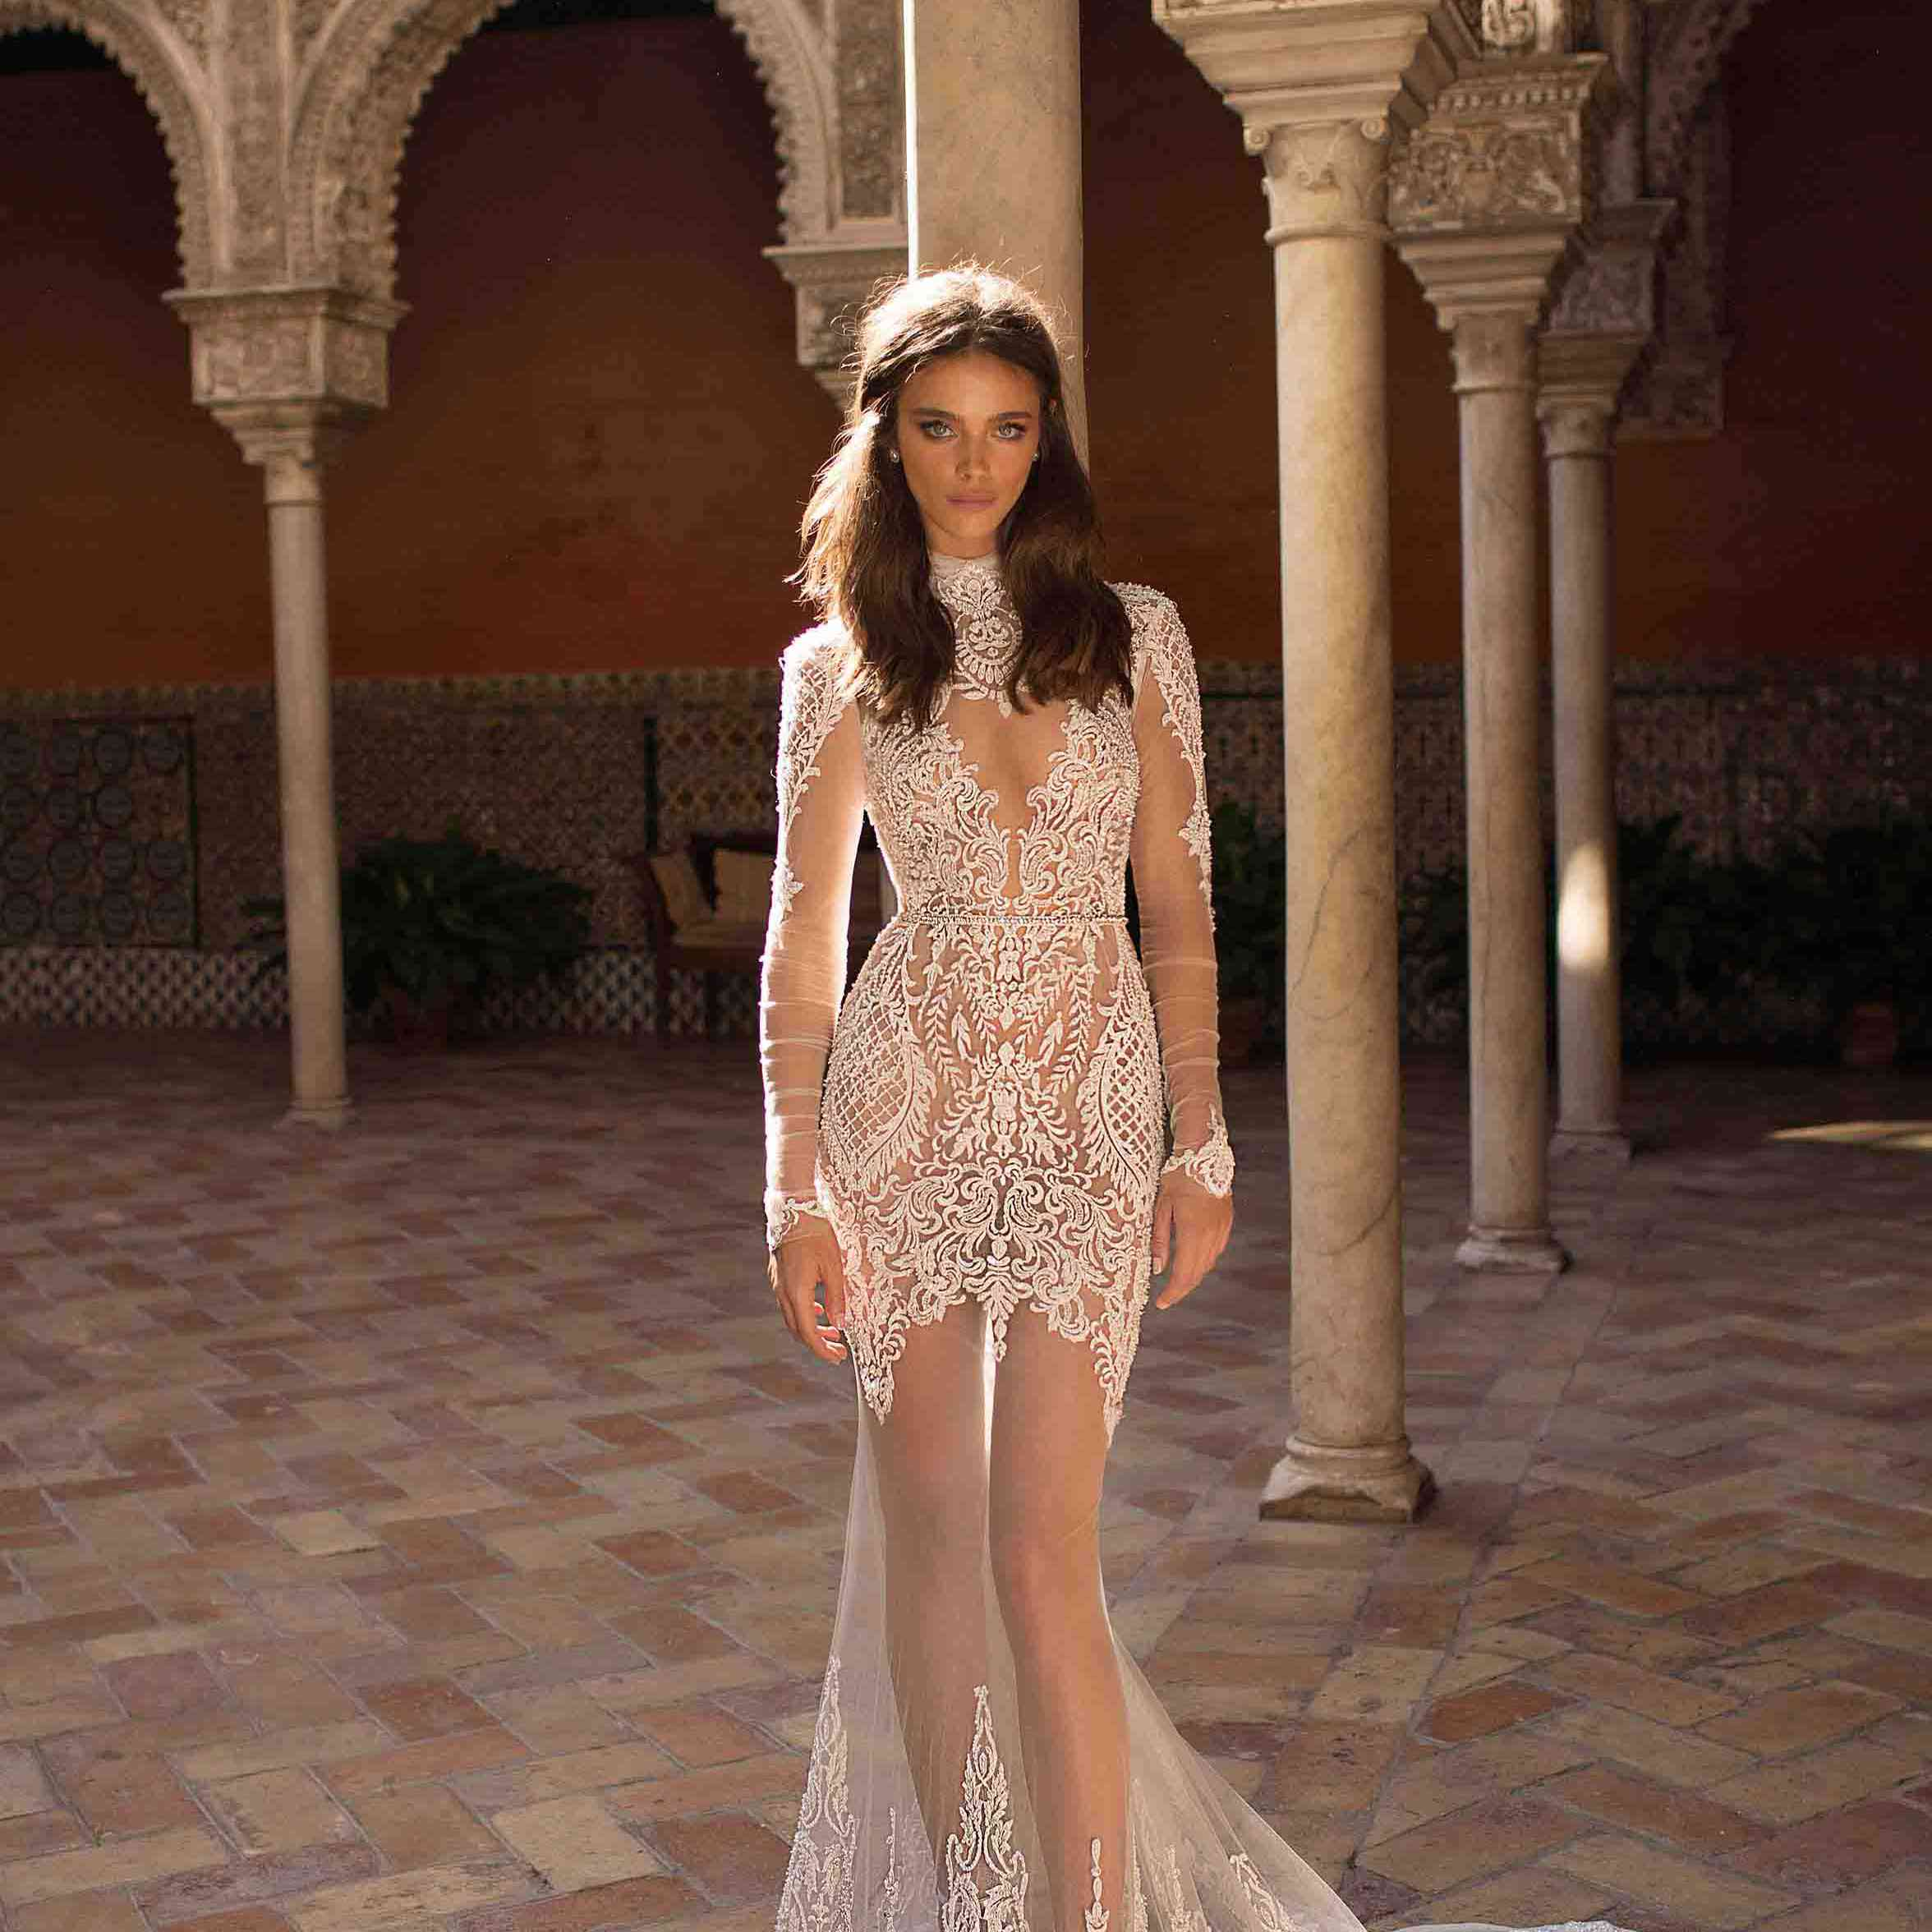 Model in sheer wedding gown with lace detailing